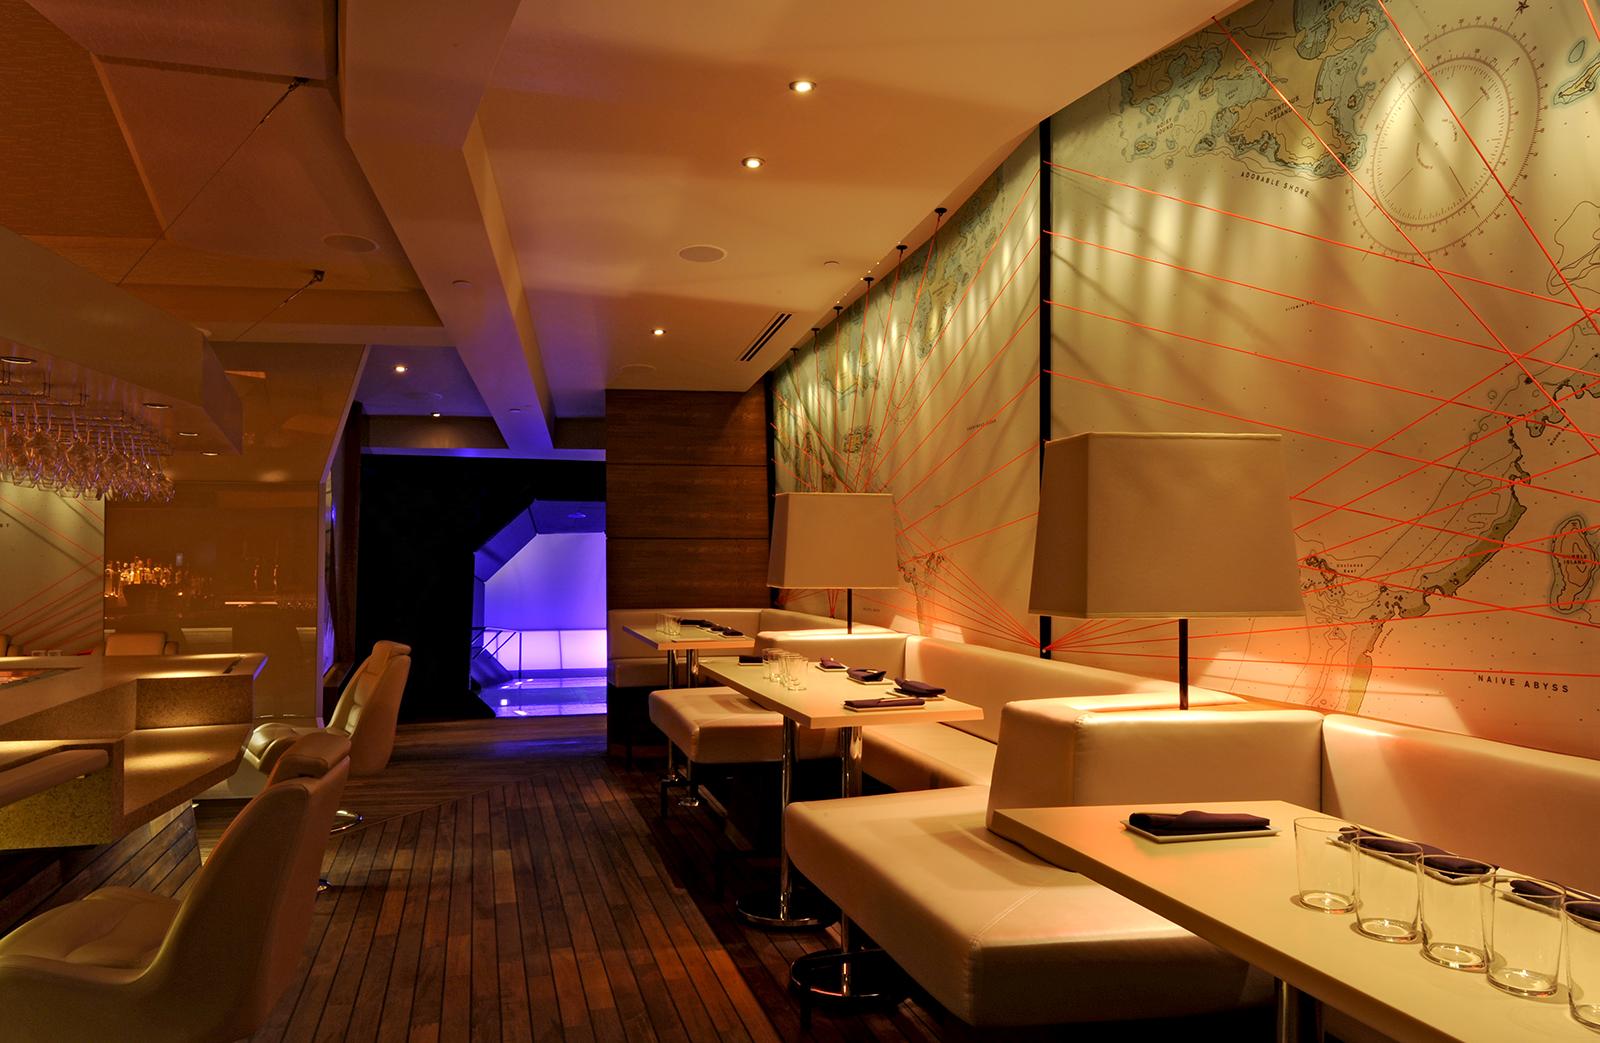 The dining room with light-colored leather booths, dark wood, and the fanciful nautical maps filling the walls.